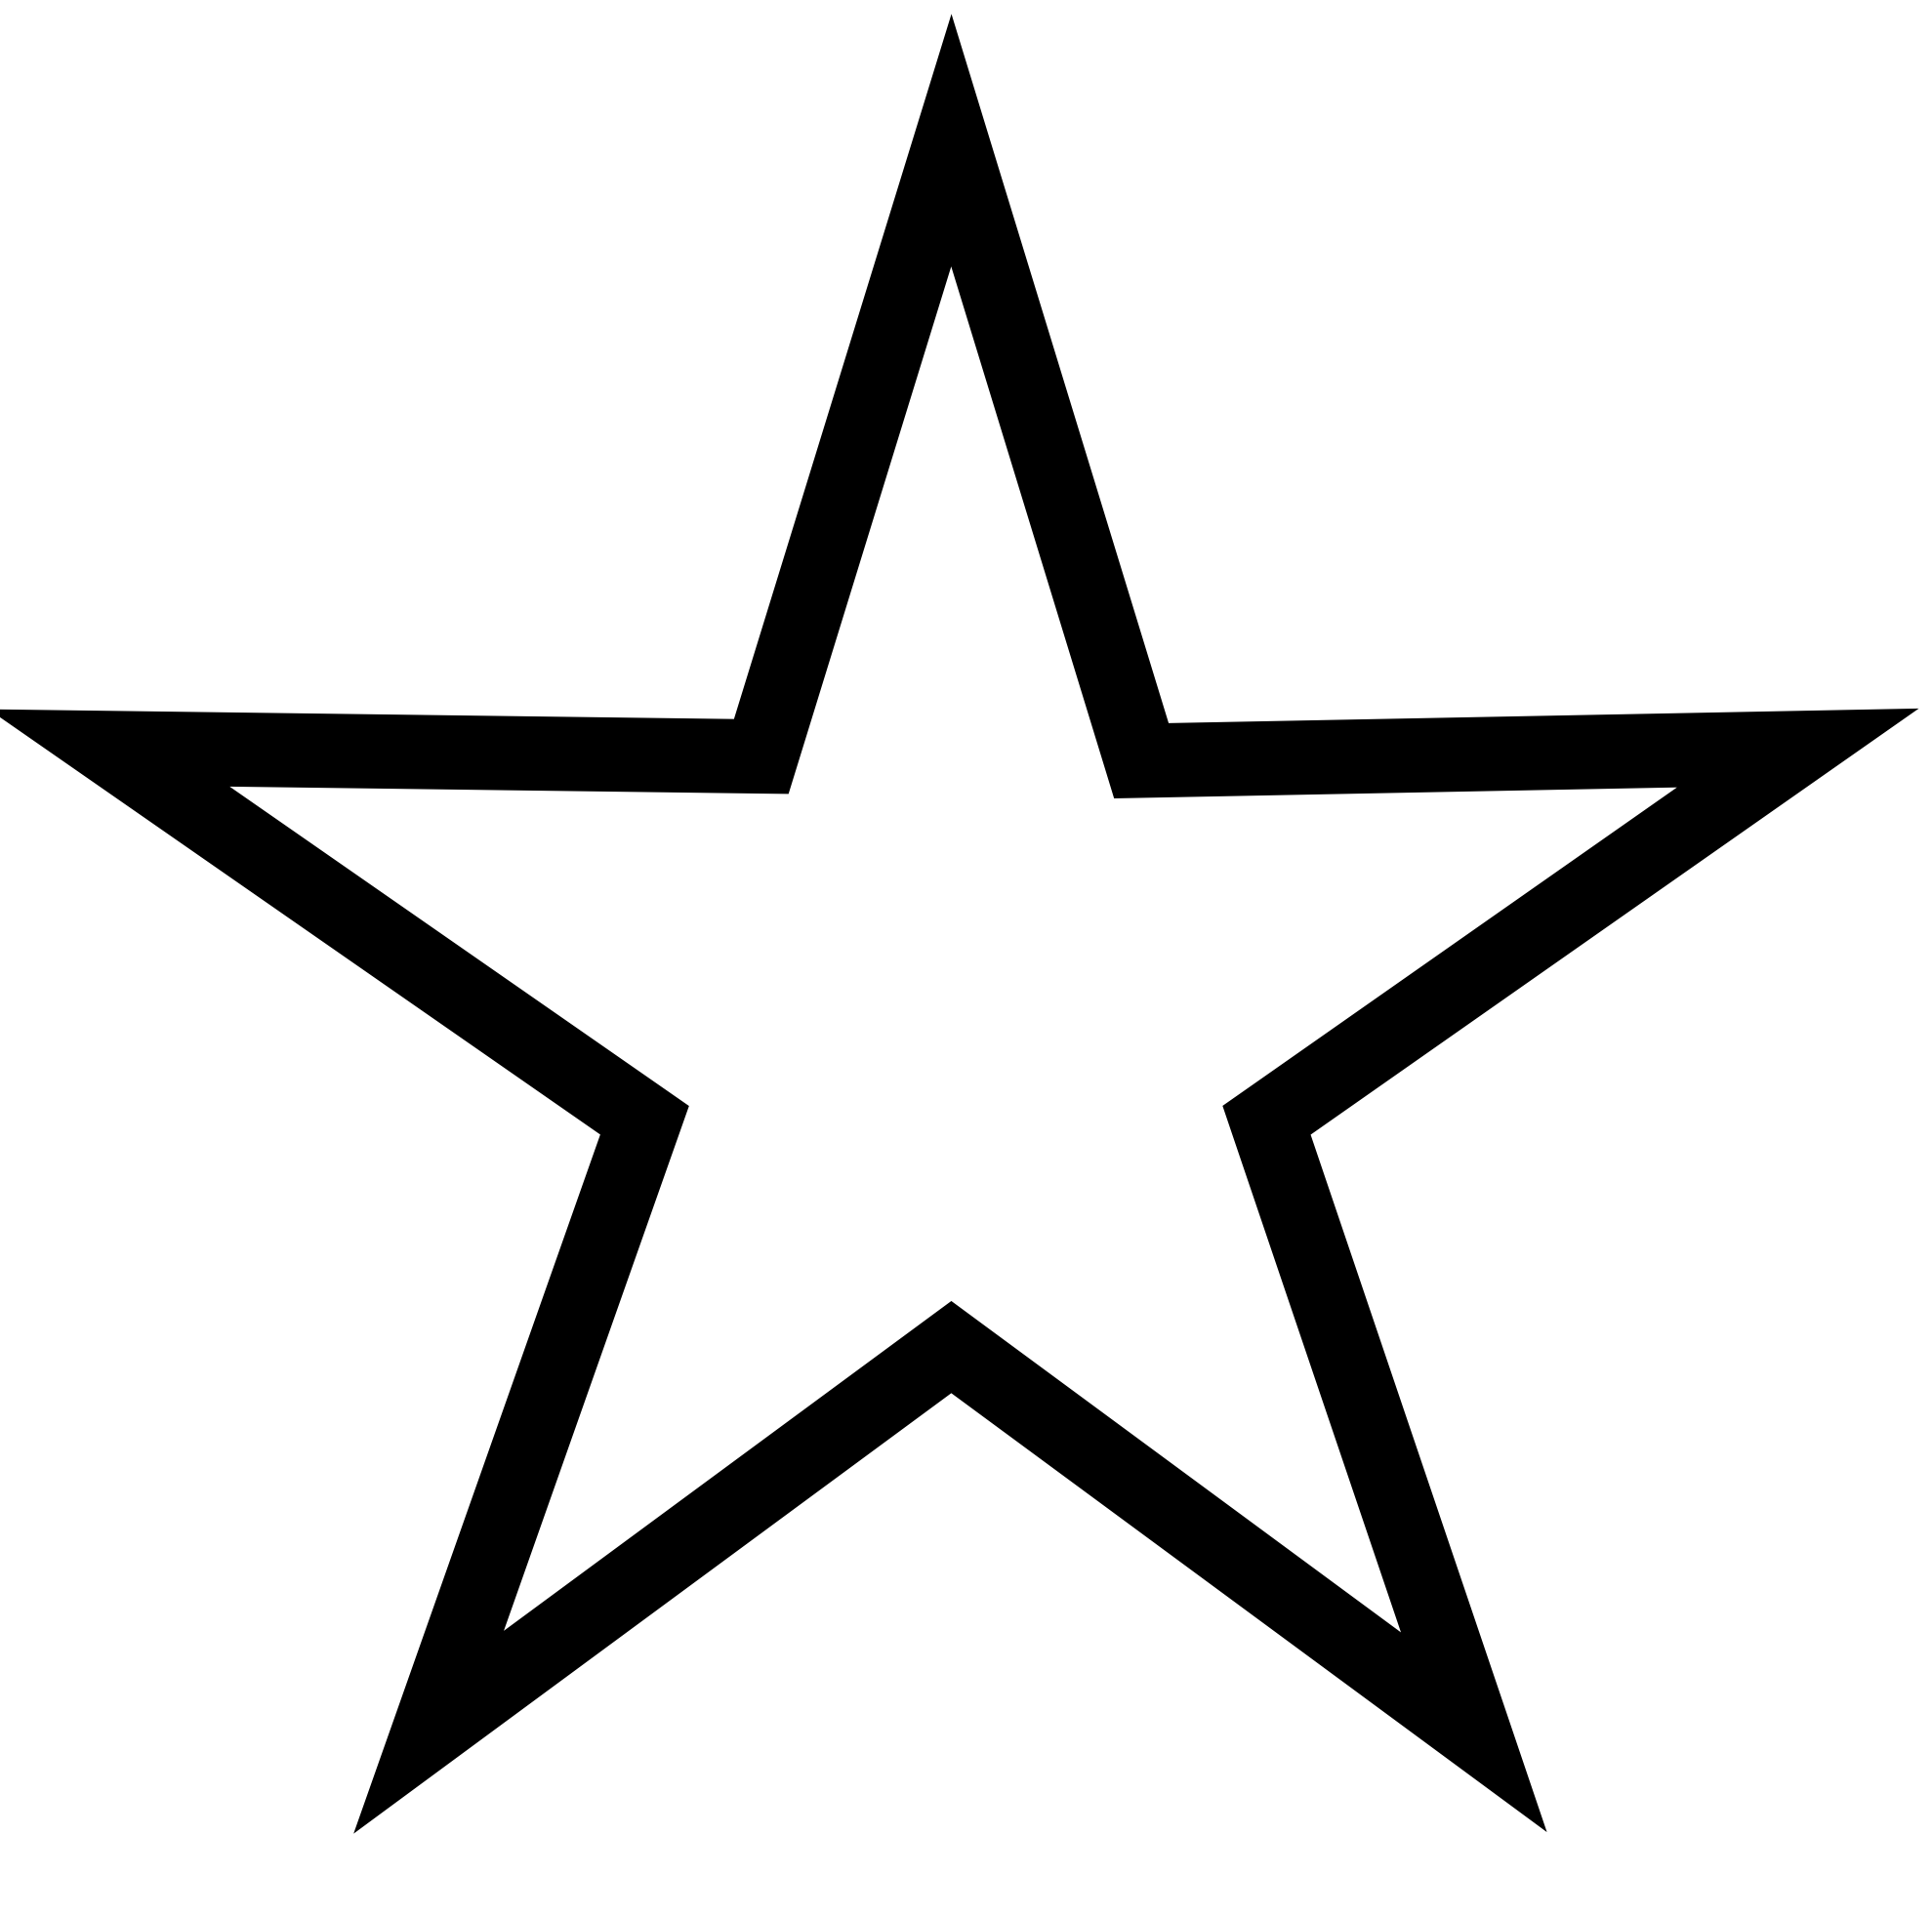 star clipart black and white-star clipart black and white-1